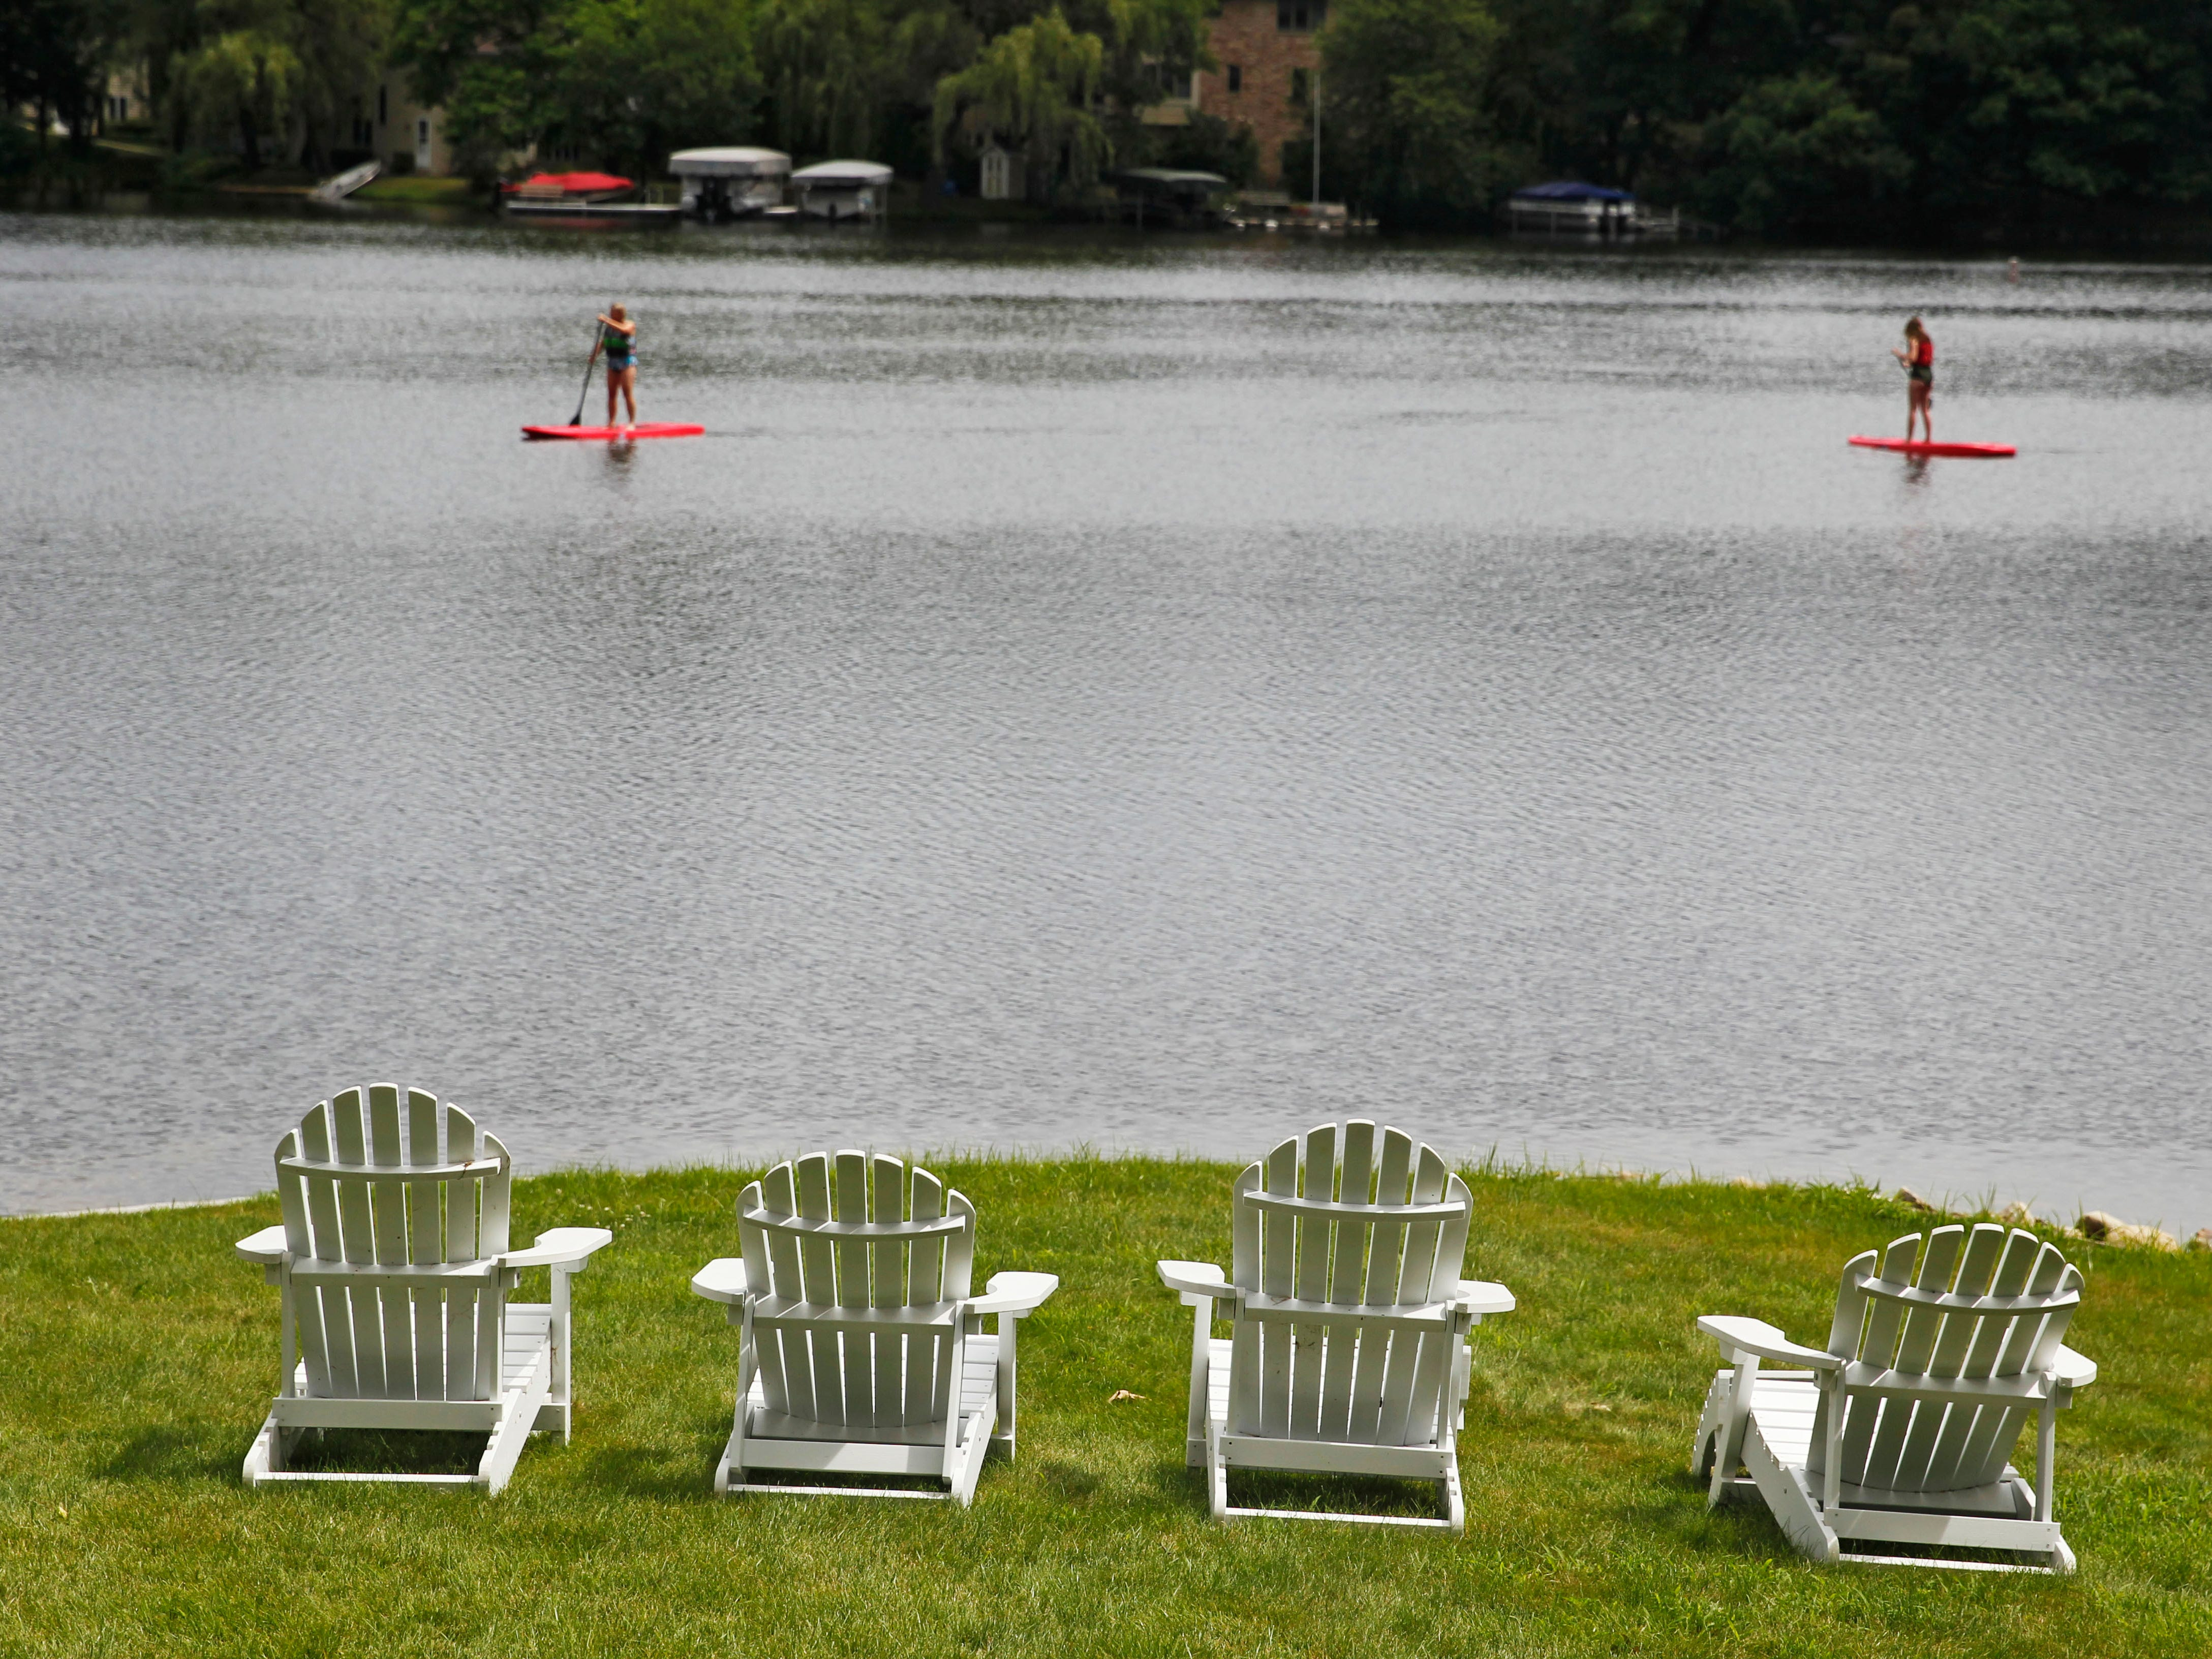 Adirondack chairs make for a perfect spot to view lake activities.